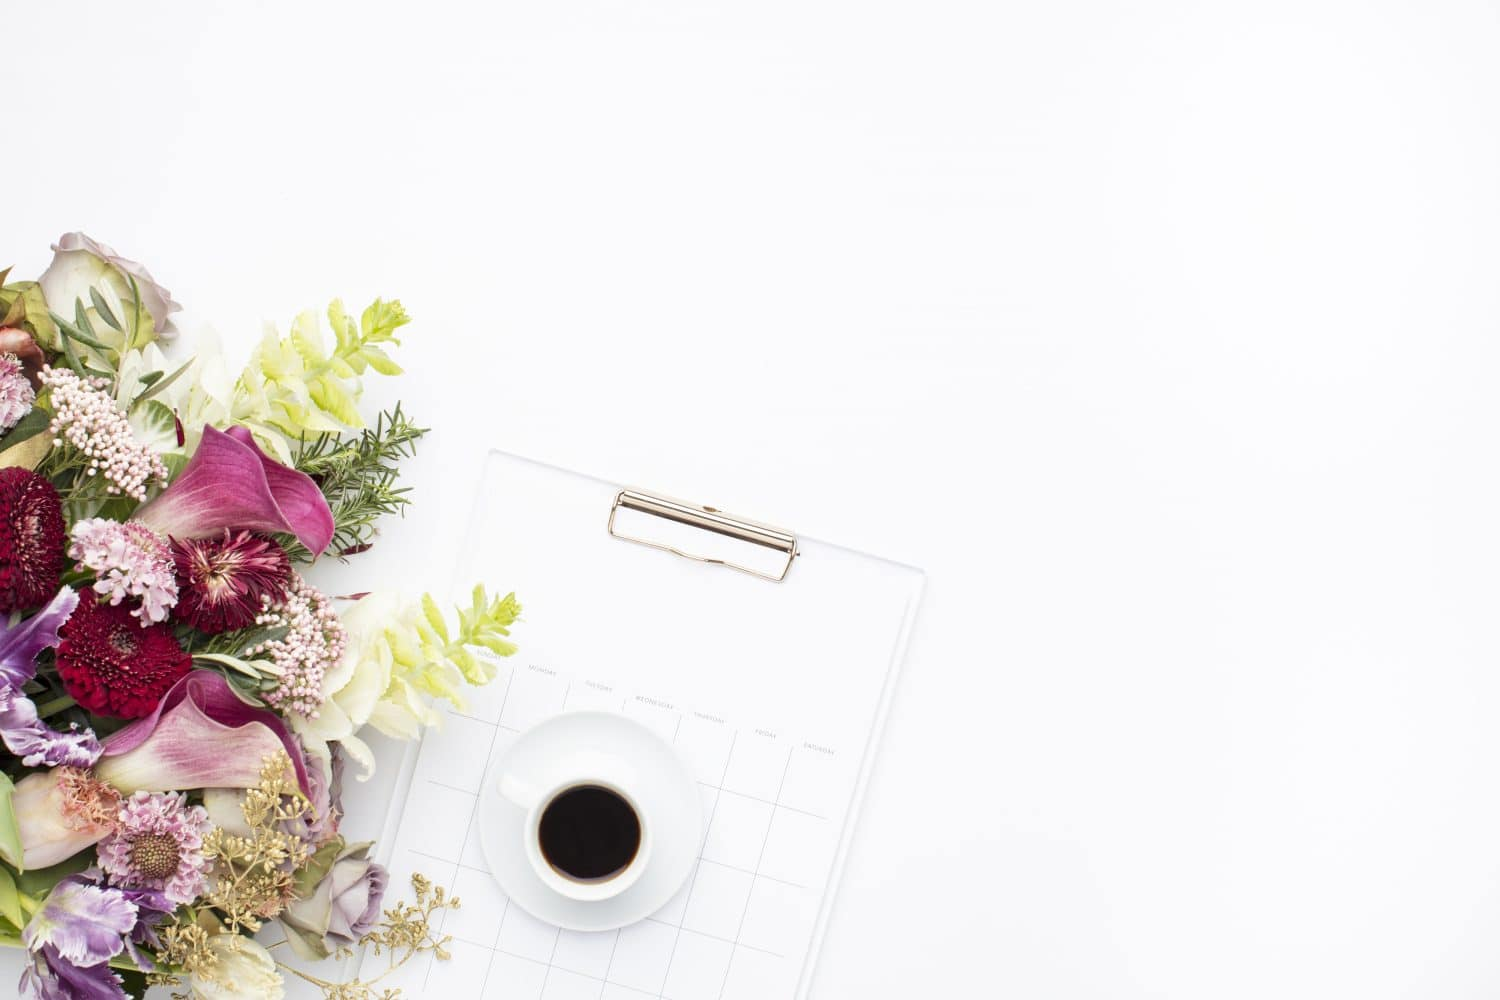 Flowers, Cup Of Coffee, Notepad Flatlay on White Background